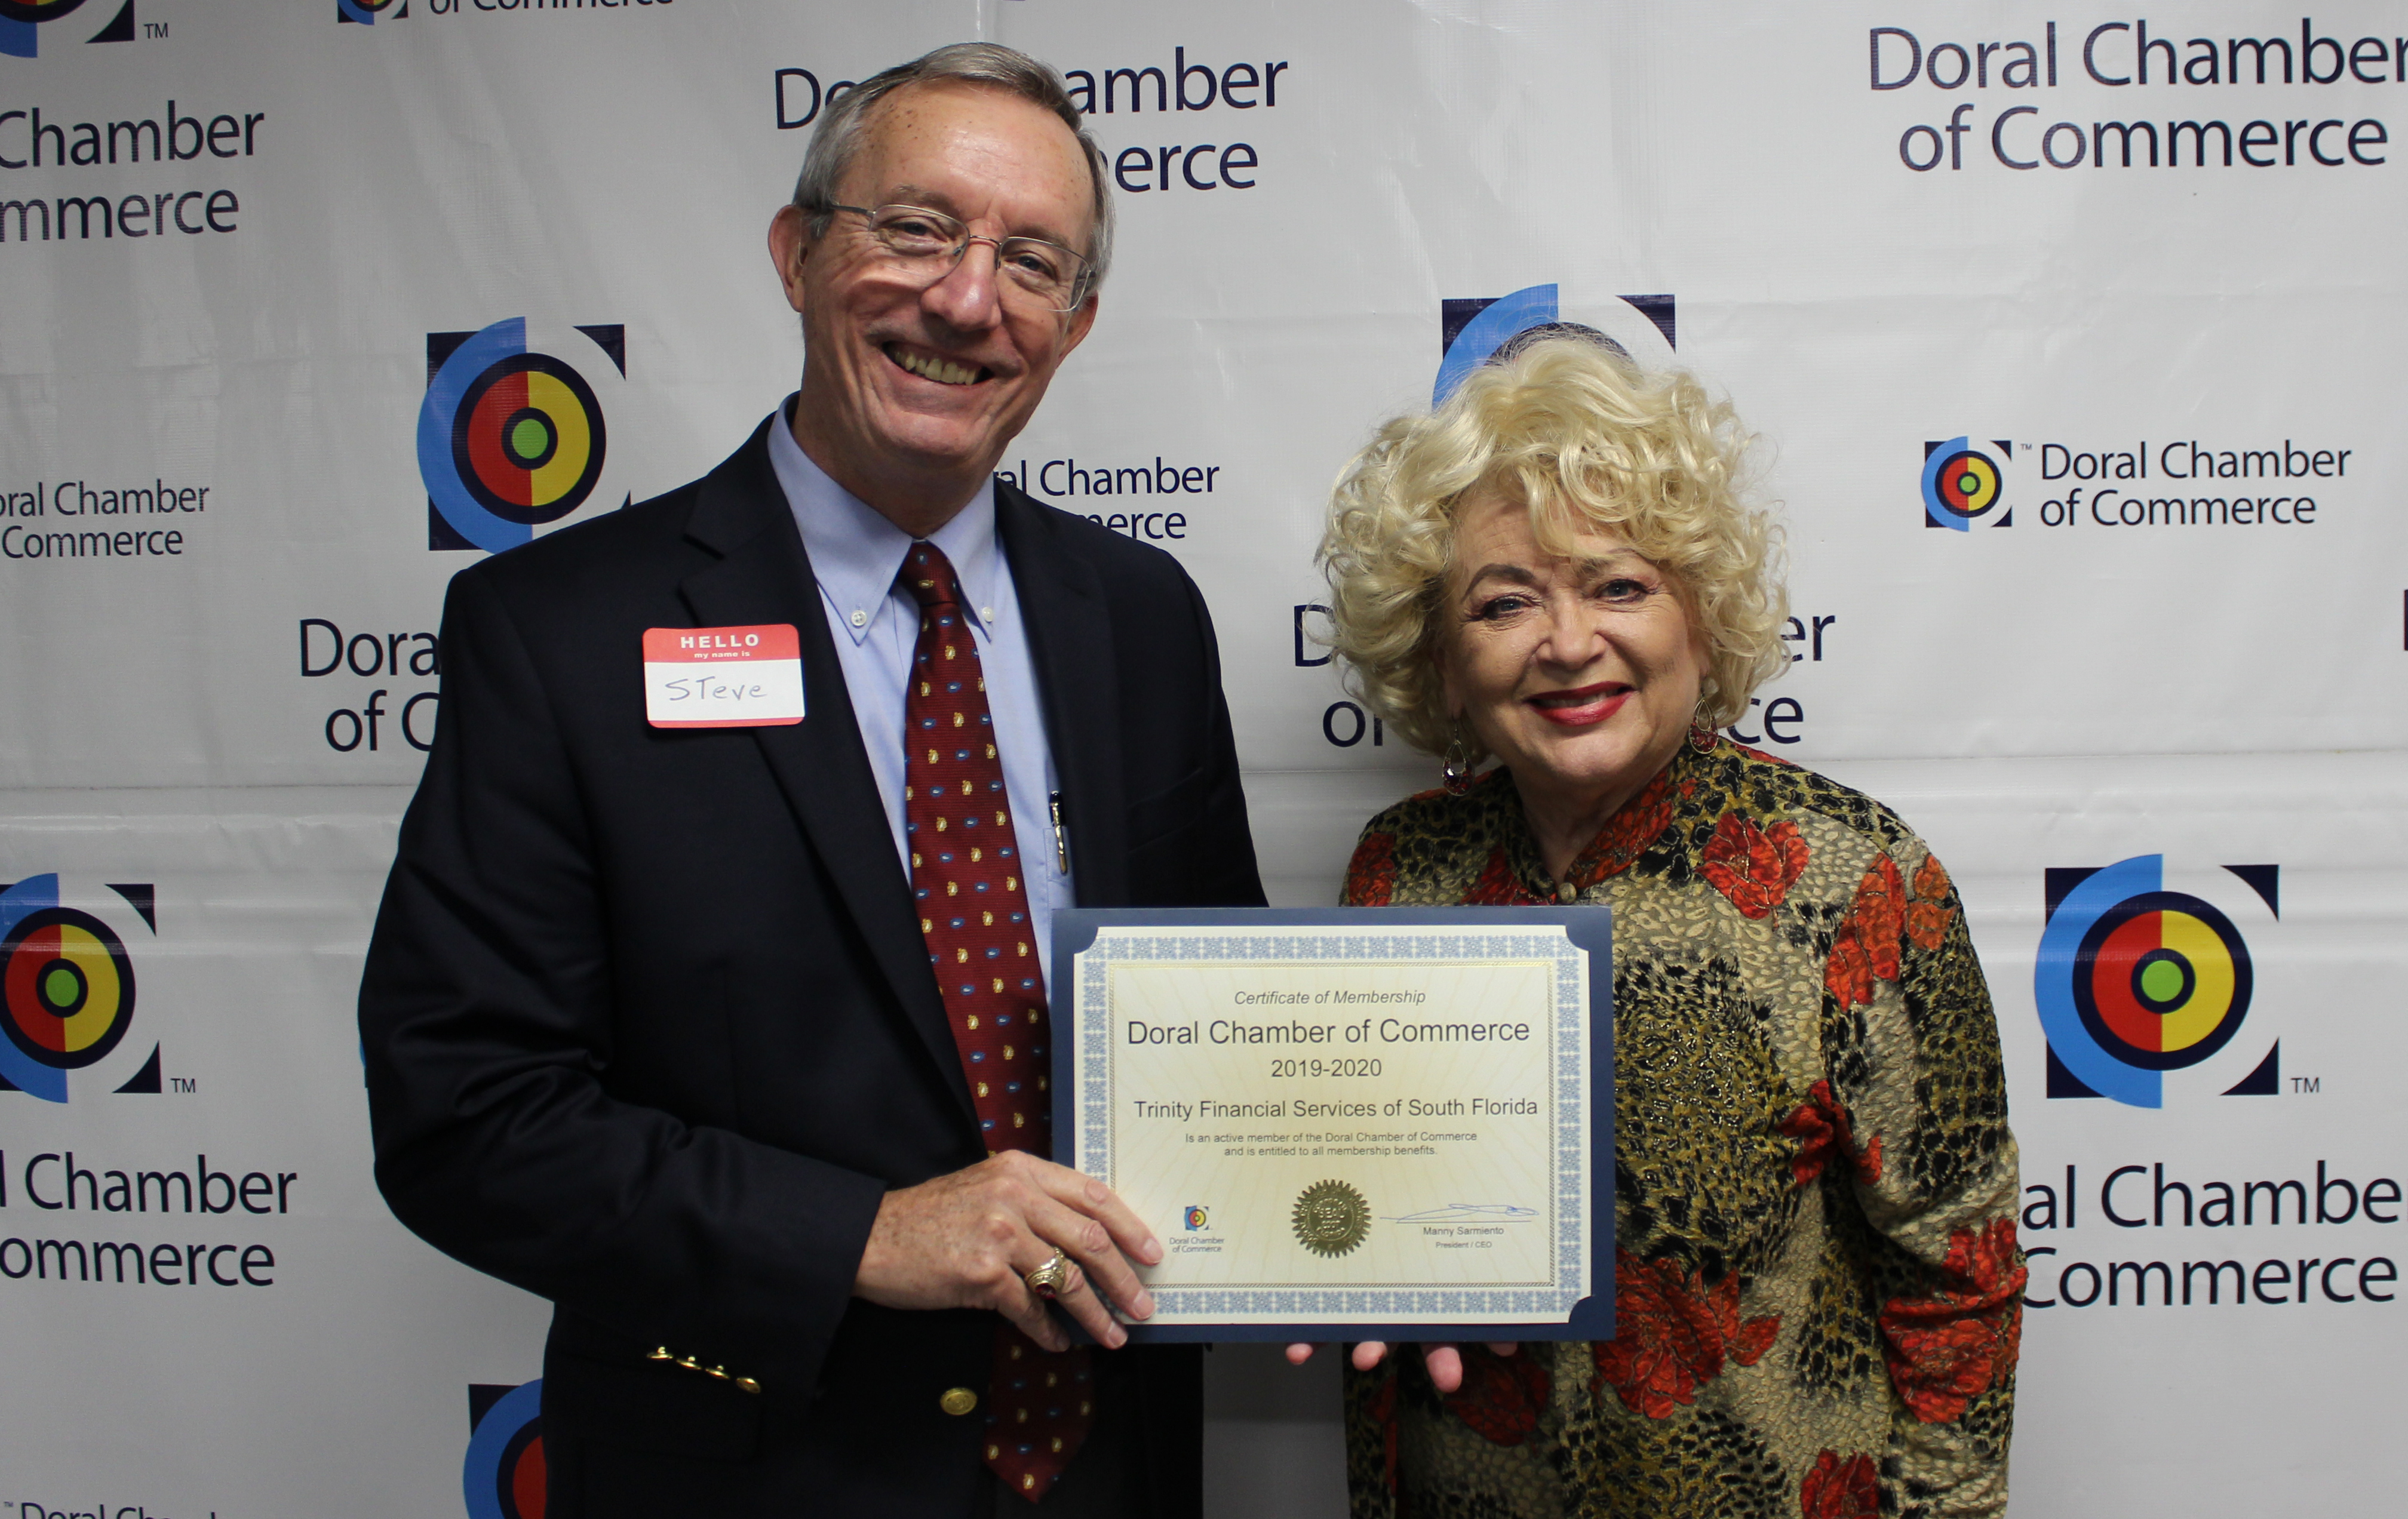 Doral Chamber of Commerce introduces Circle of Success event, photo with Blanche de Jesus.